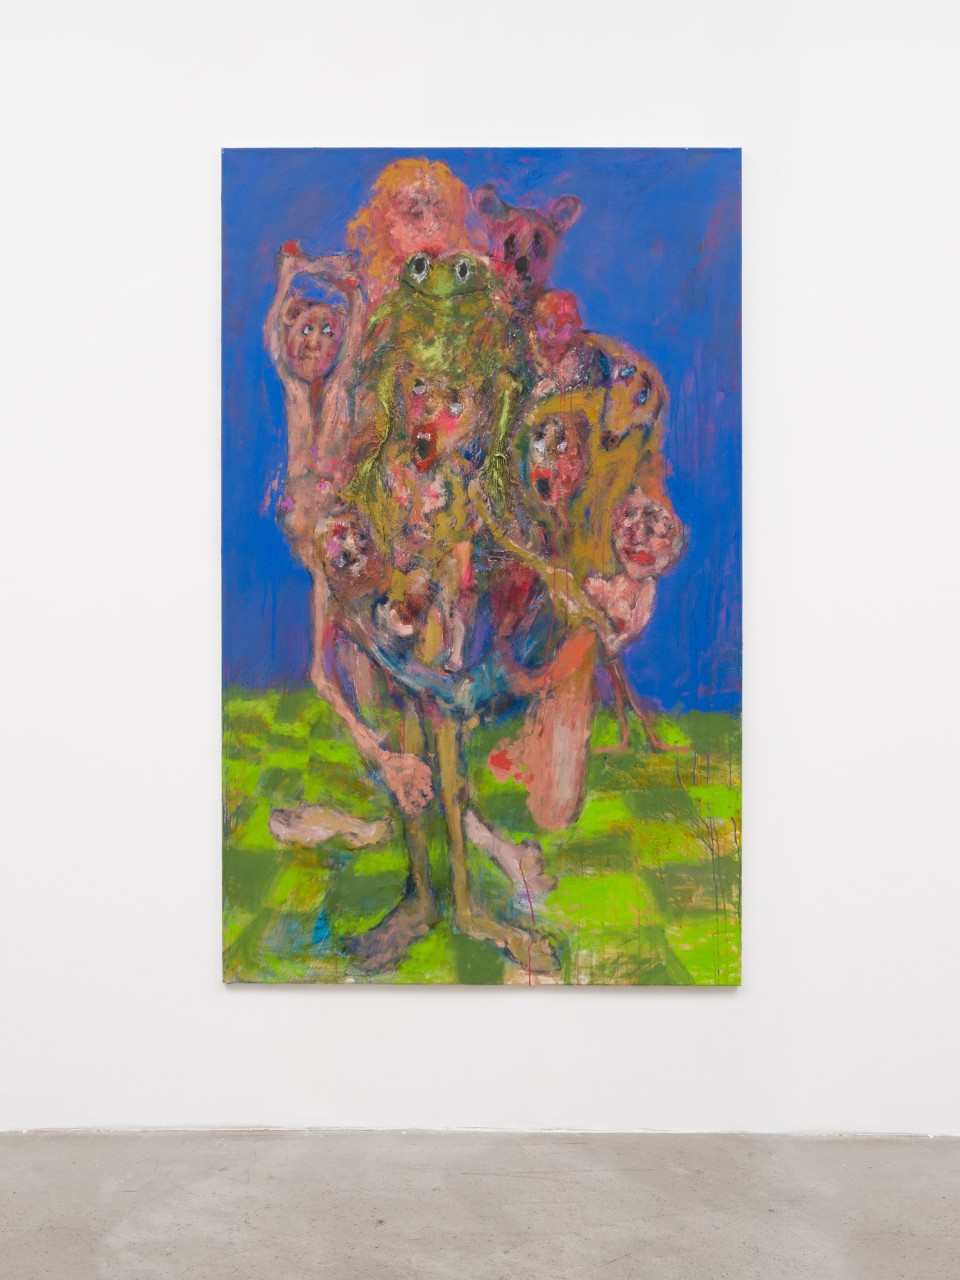 Image: Eva Beresin  Illuminated, 2021  signed, dated and titled verso  oil on canvas  78 1/2 x 49 inches (199.4 x 124.5 cm)  (EBe.21.025.79)